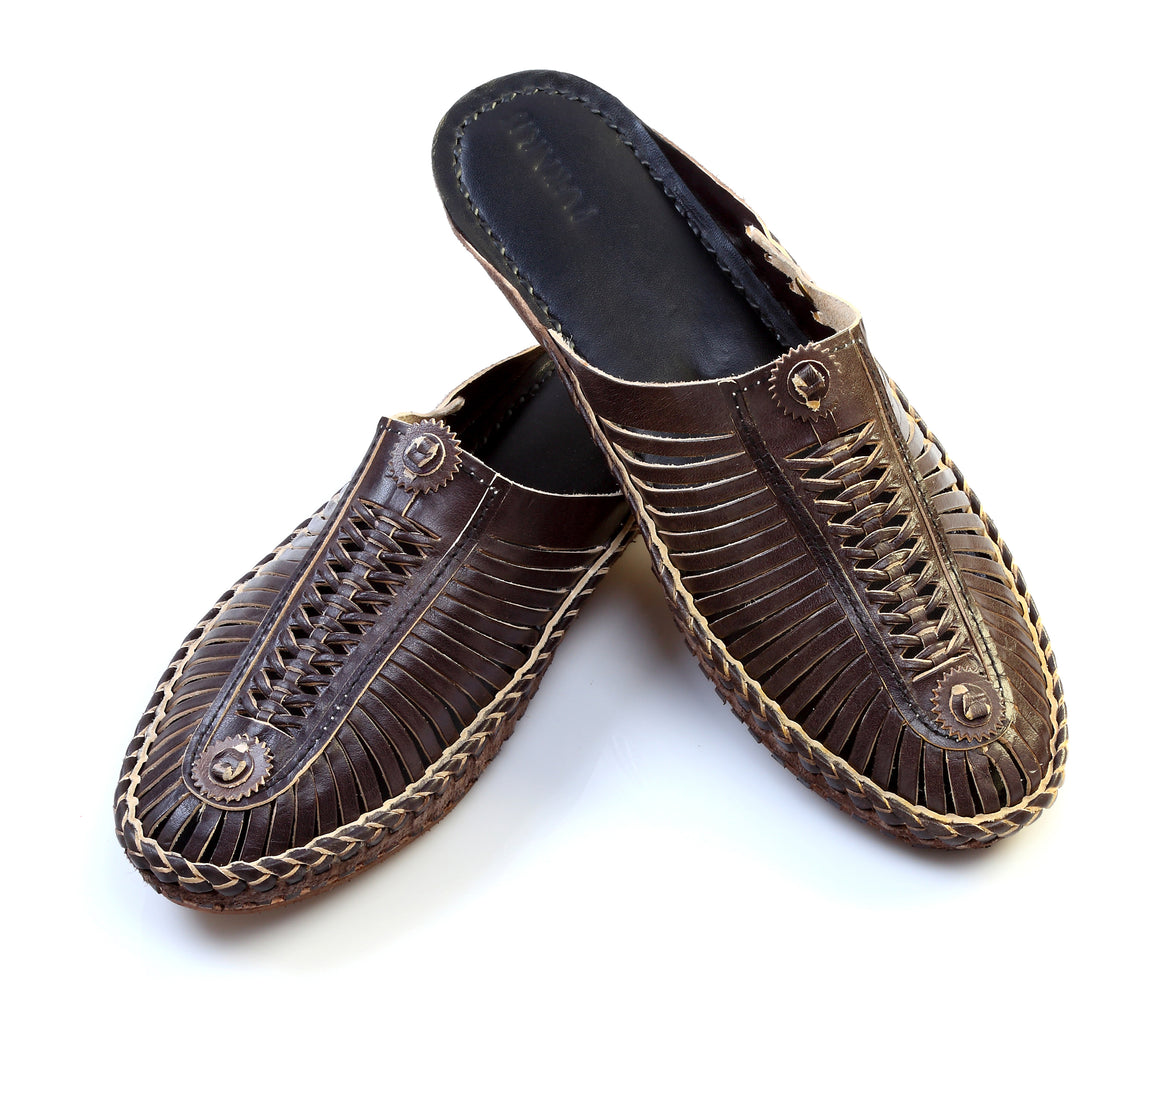 men's mule shoes, hand woven shoes, Men's vintage shoes, men's lace shoes, men's moccasins, men's mule shoes, men's shoes, men's leather shoes